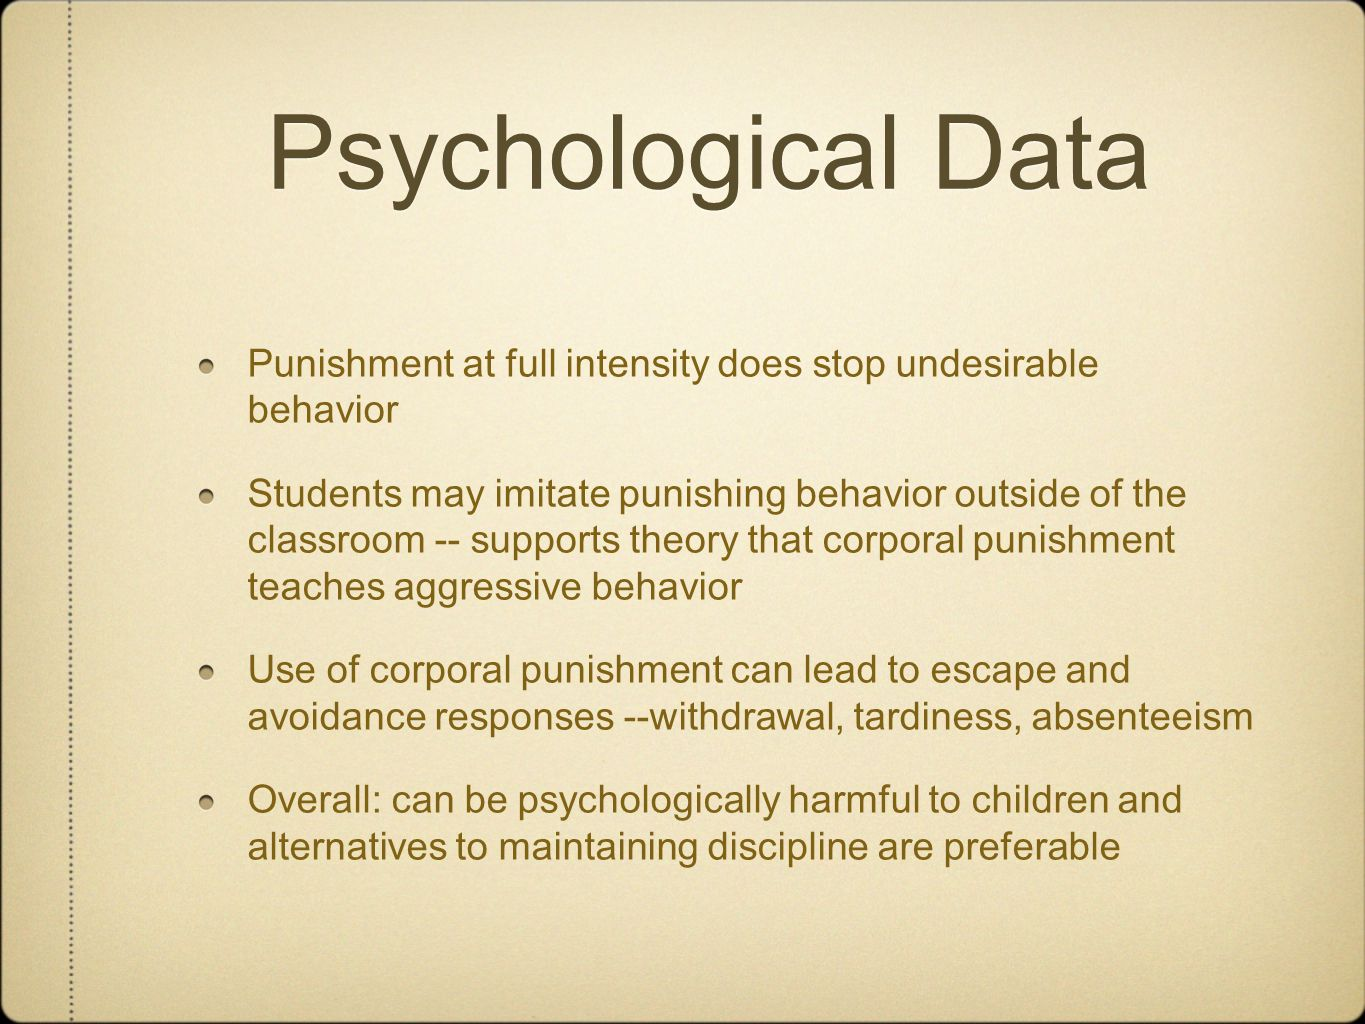 Psychological Data Punishment at full intensity does stop undesirable behavior Students may imitate punishing behavior outside of the classroom -- supports theory that corporal punishment teaches aggressive behavior Use of corporal punishment can lead to escape and avoidance responses --withdrawal, tardiness, absenteeism Overall: can be psychologically harmful to children and alternatives to maintaining discipline are preferable